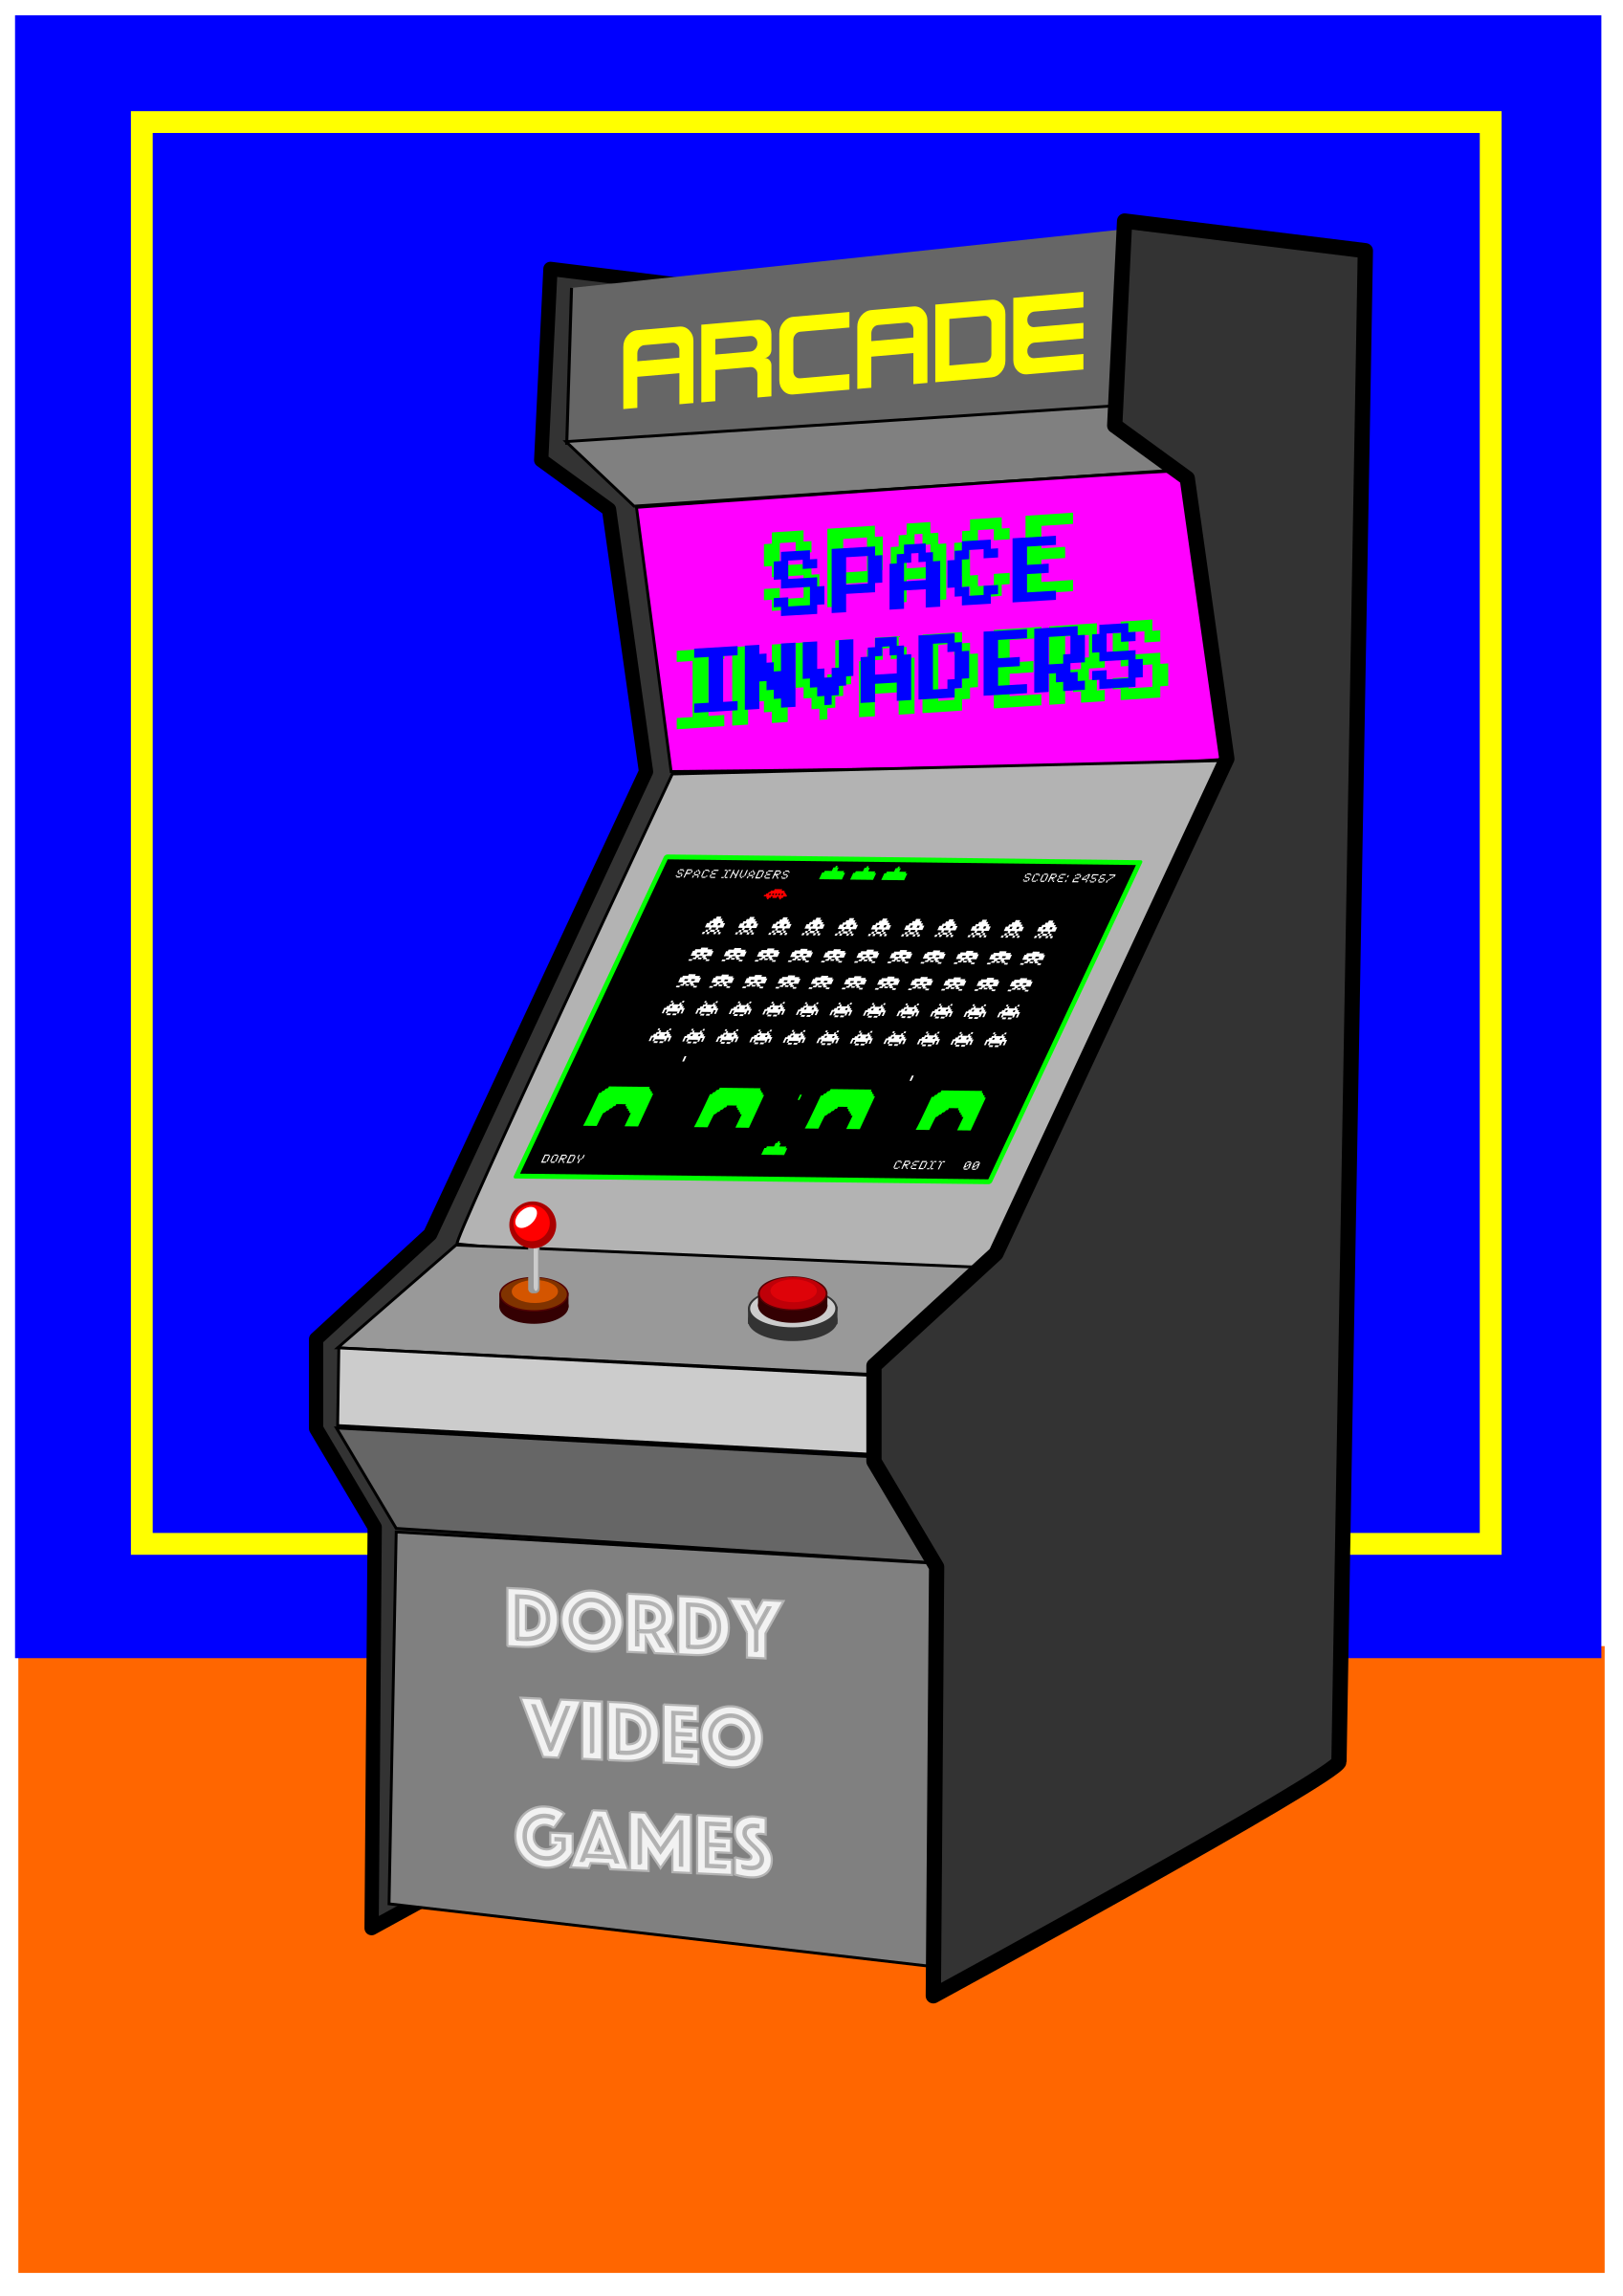 VIDEO GAMES ARCADE by dordy